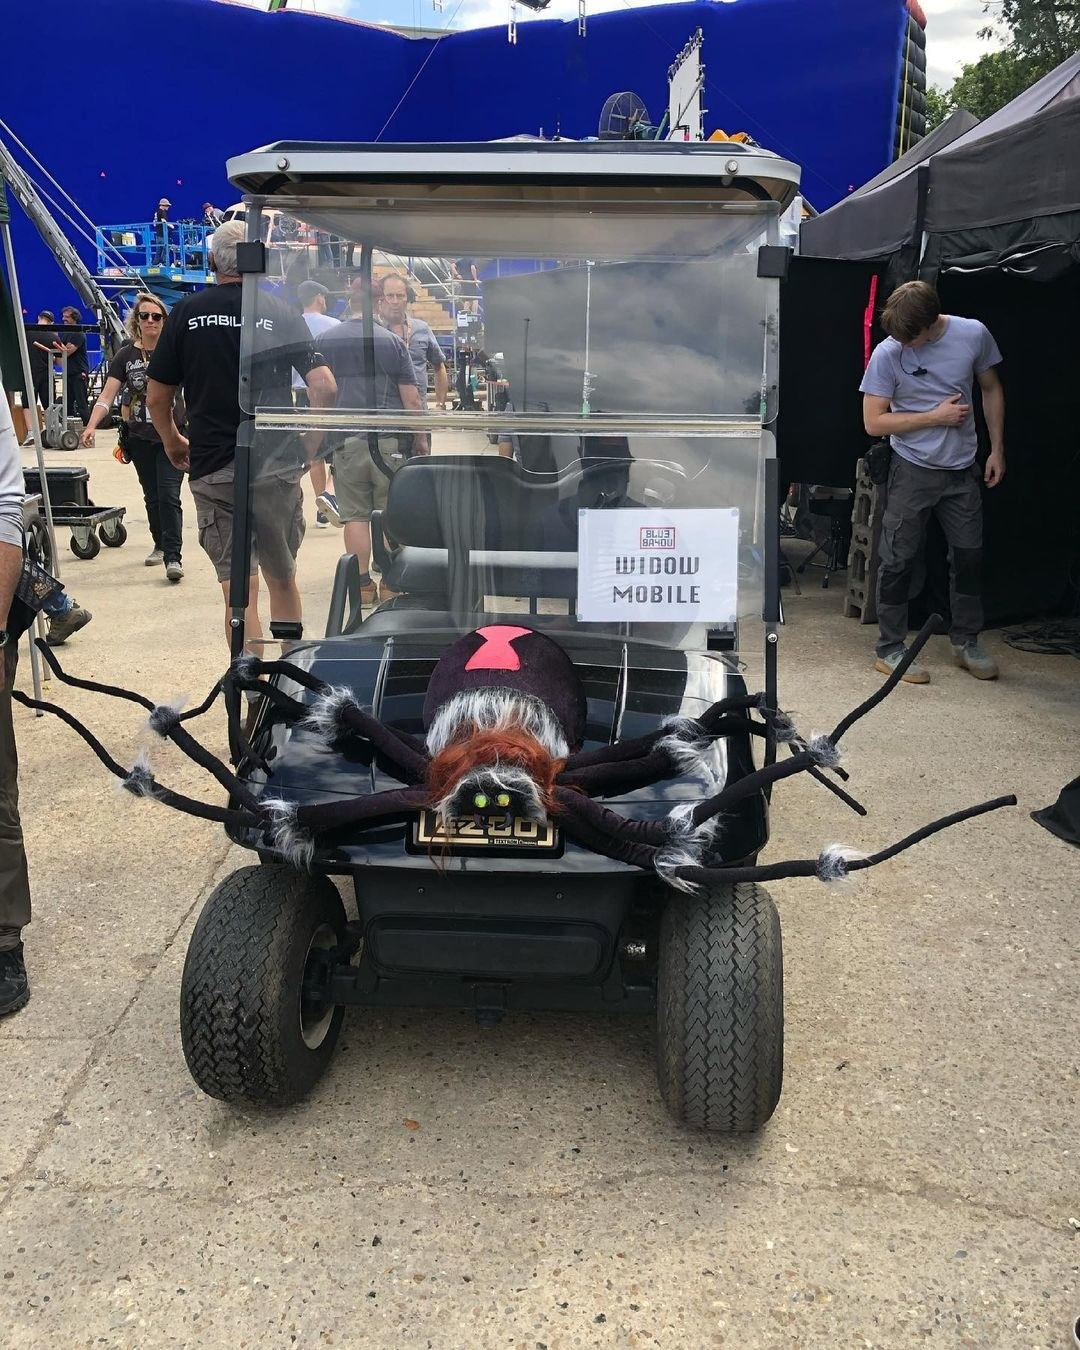 """A golf cart with a giant spider on the front called """"Widow Mobile"""""""